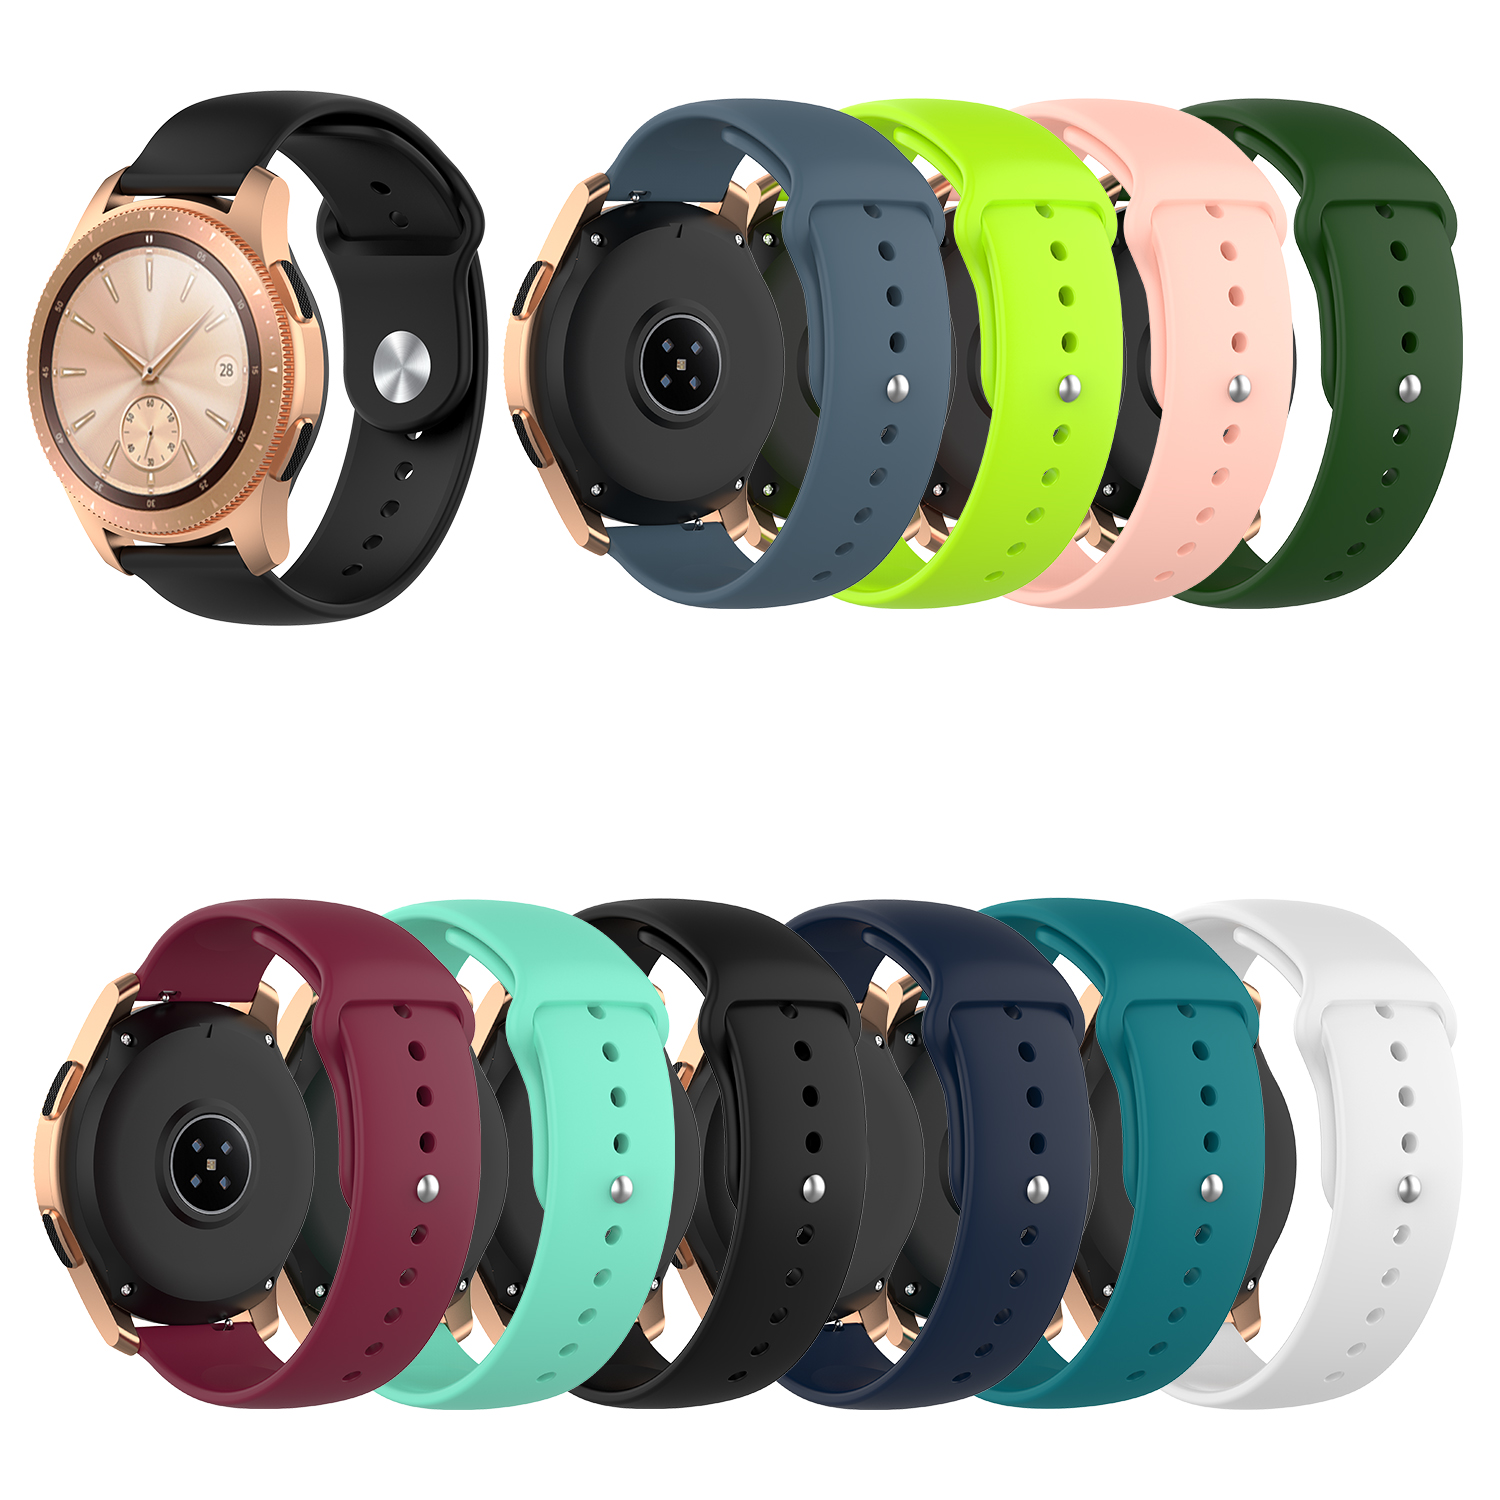 20mm Silicone Watchband For Samsung Galaxy Watch Active 42mm Gear S2 Sport Replacement Bracelet Band Strap For SM-R500 SM-R810